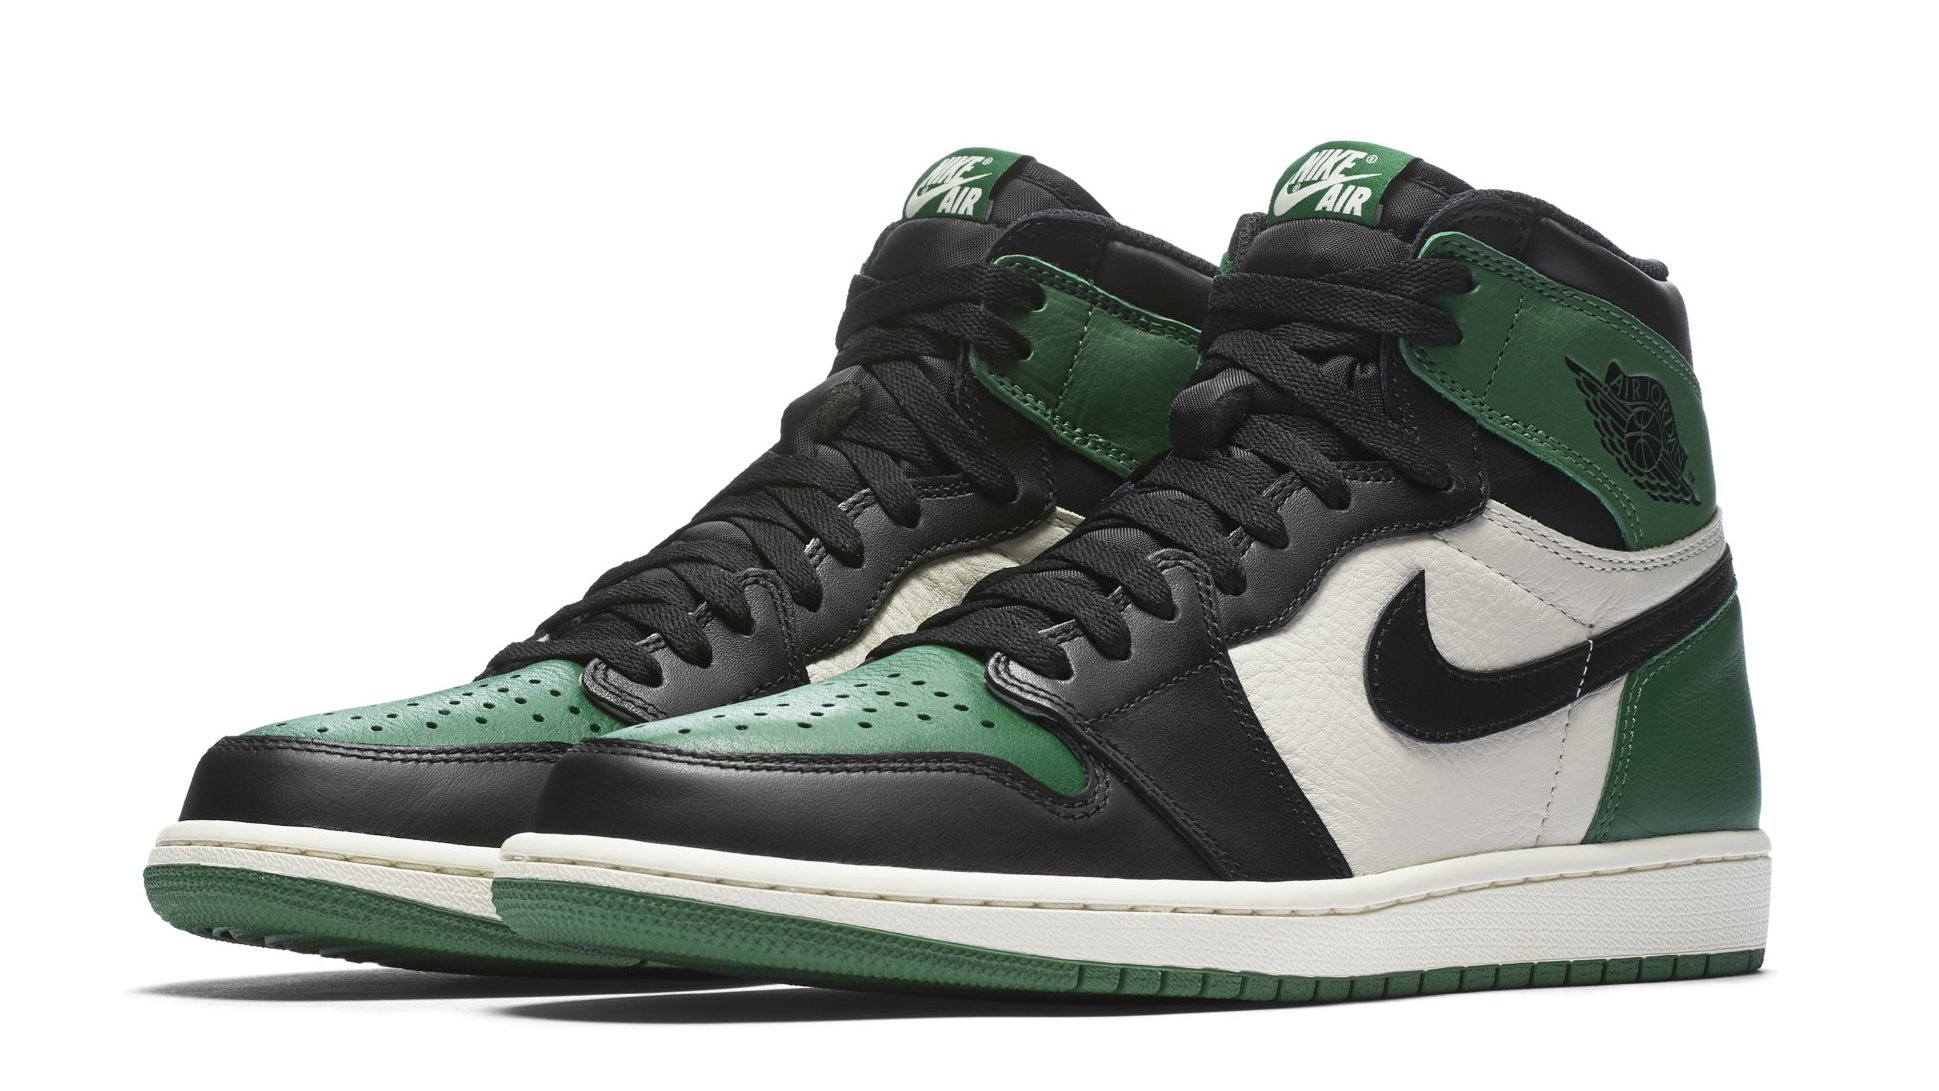 44bd3fd70bb32b Air Jordan 1 High OG NRG Pine Green Sail-Black 555088-302 Release Date